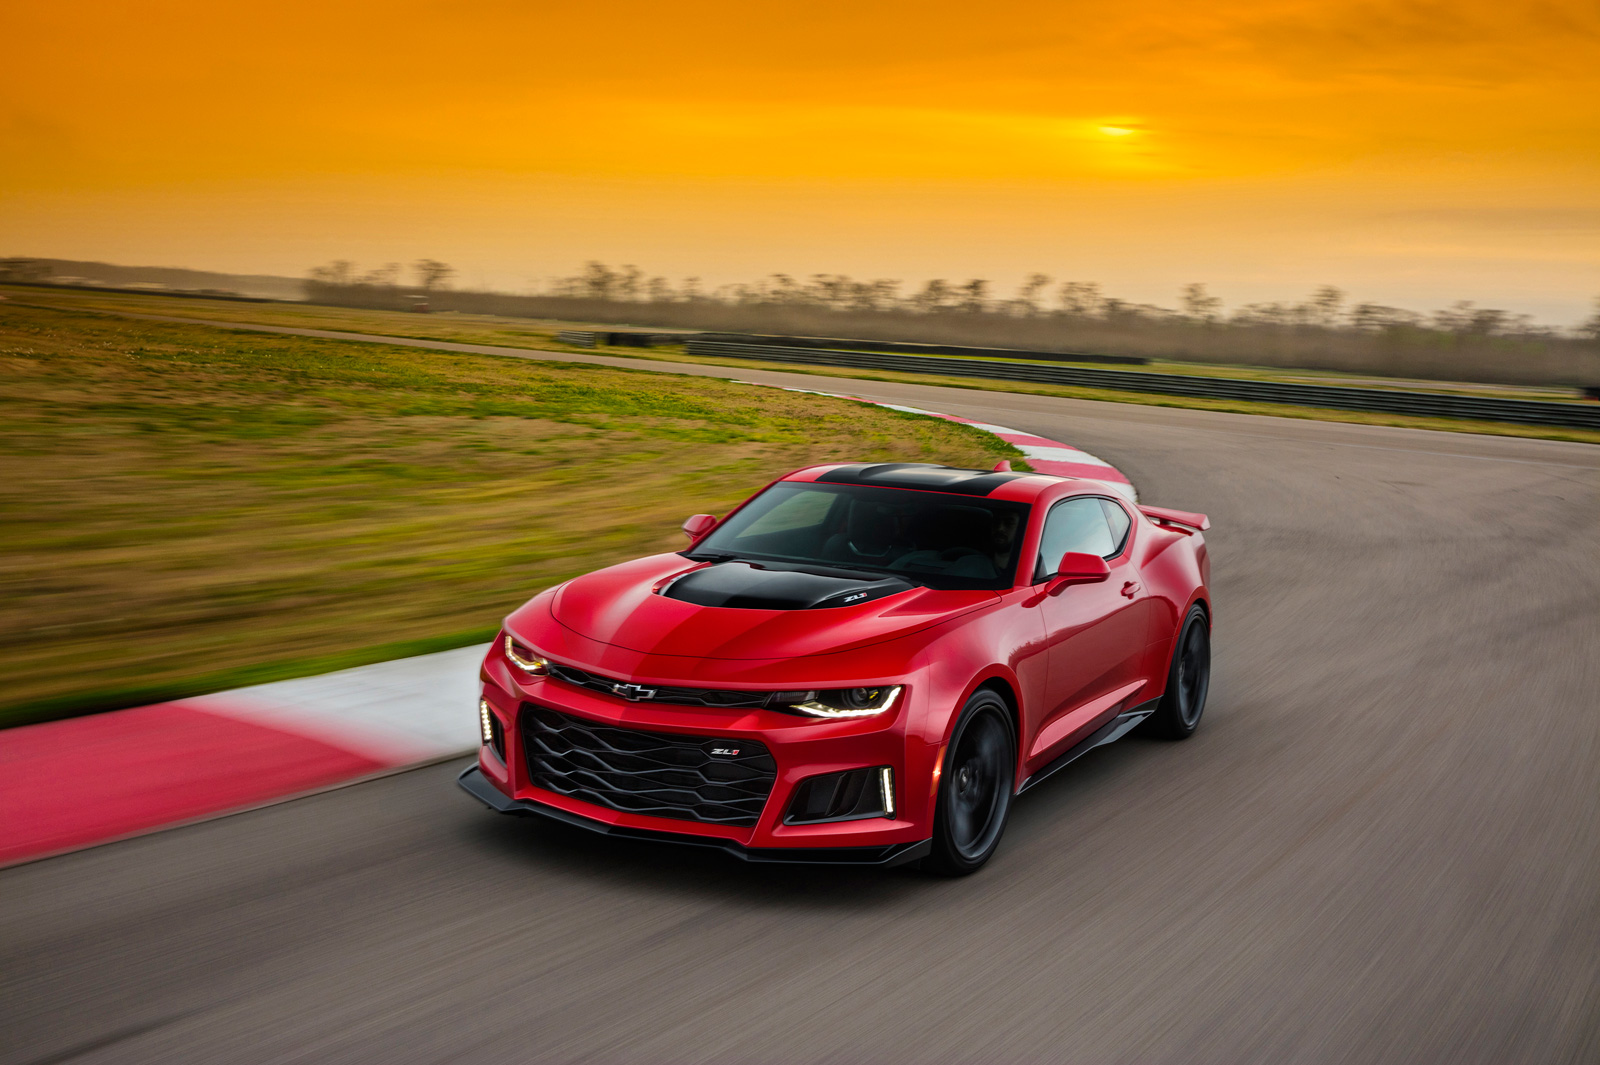 Chevy Camaro Zl1 Hits 60 Mph In First Gear With Manual